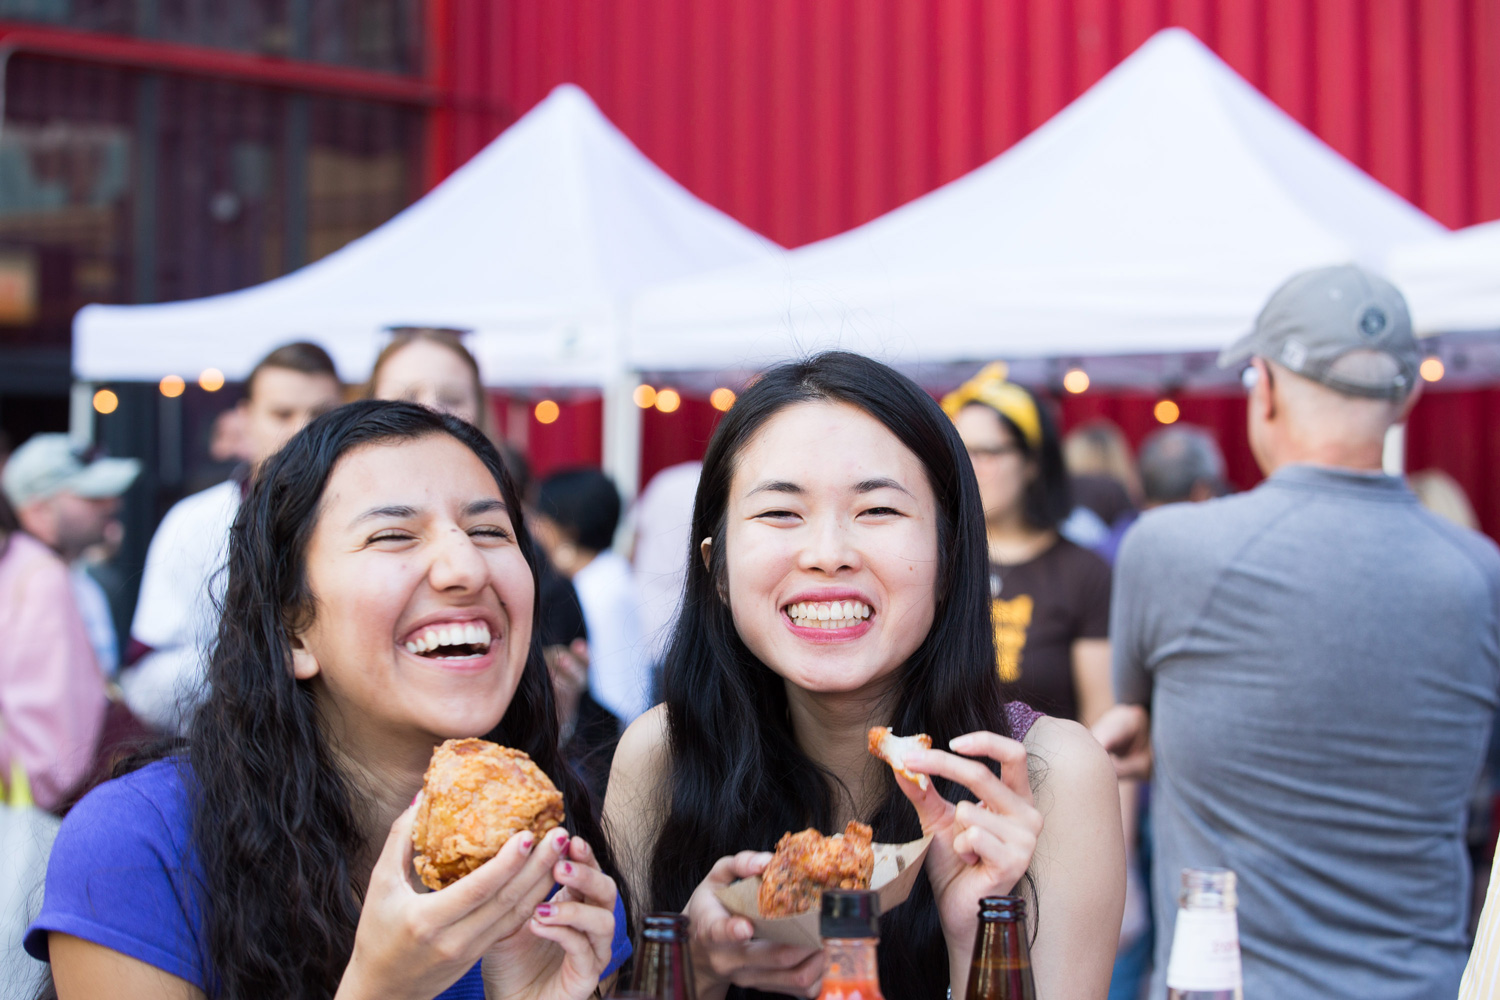 ny-food-film-fest-girls-happy-fried-chicken.jpg